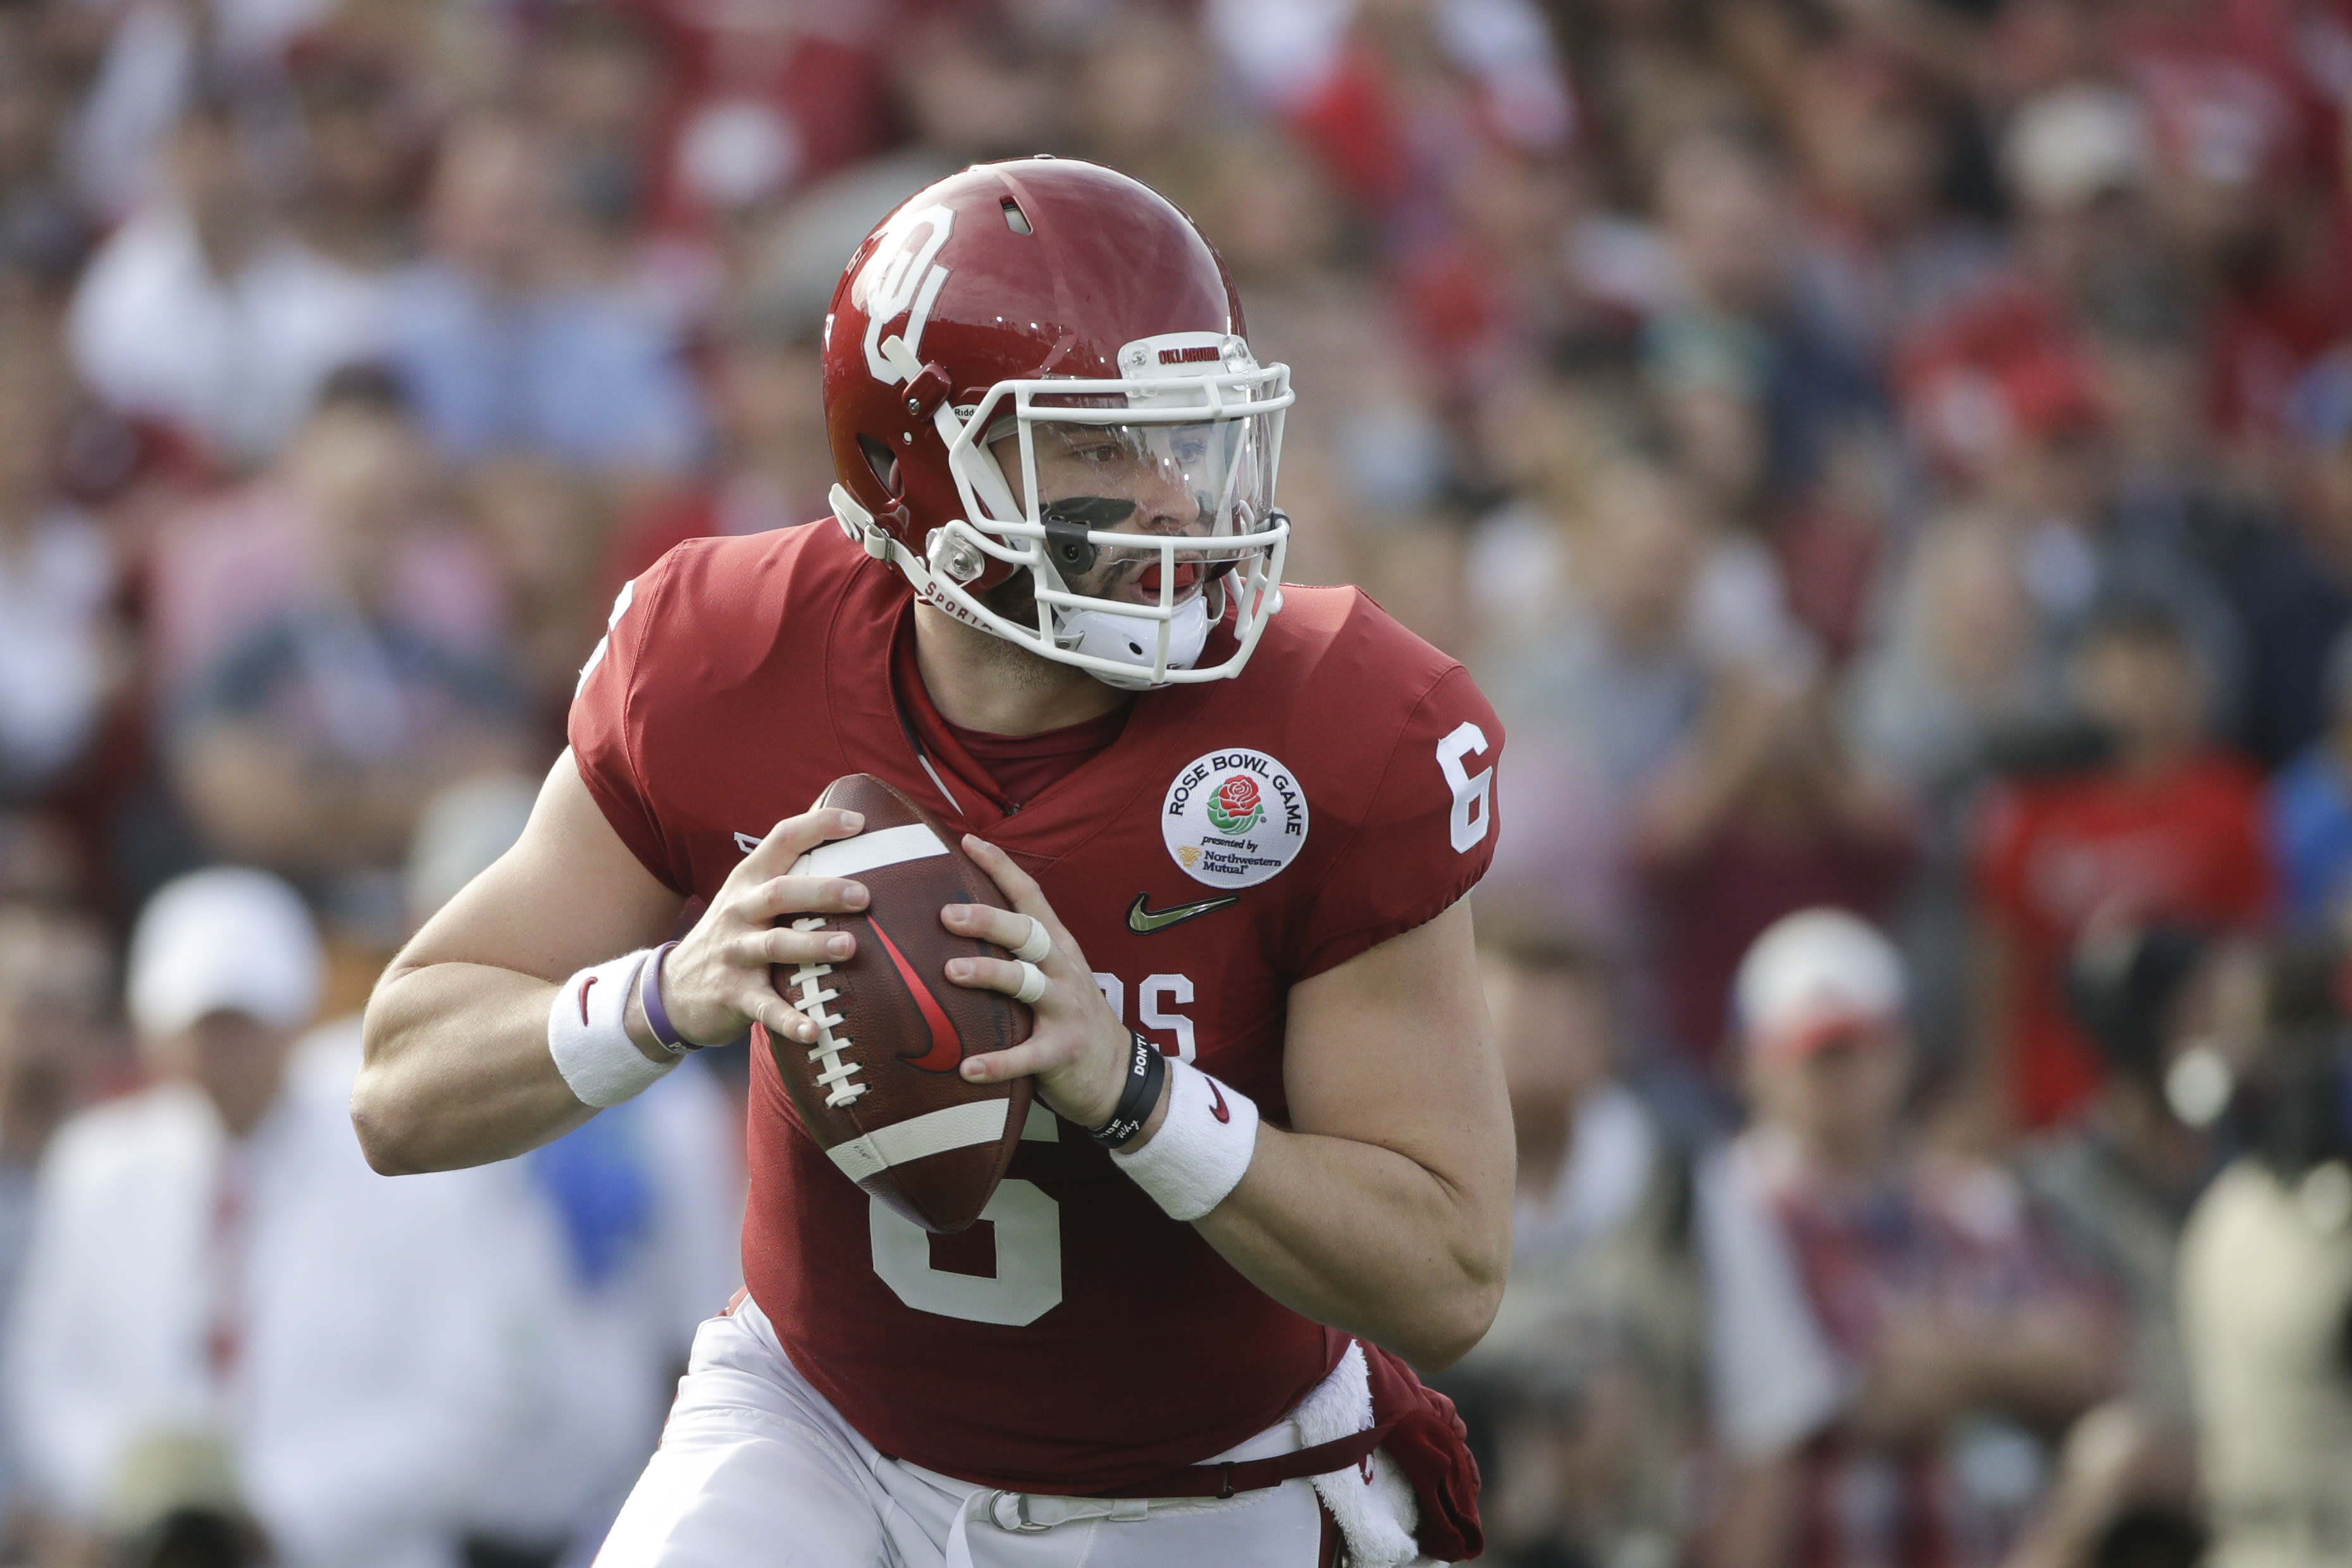 Baker Mayfield to Browns at No. 1? This might be the most unpredictable draft ever